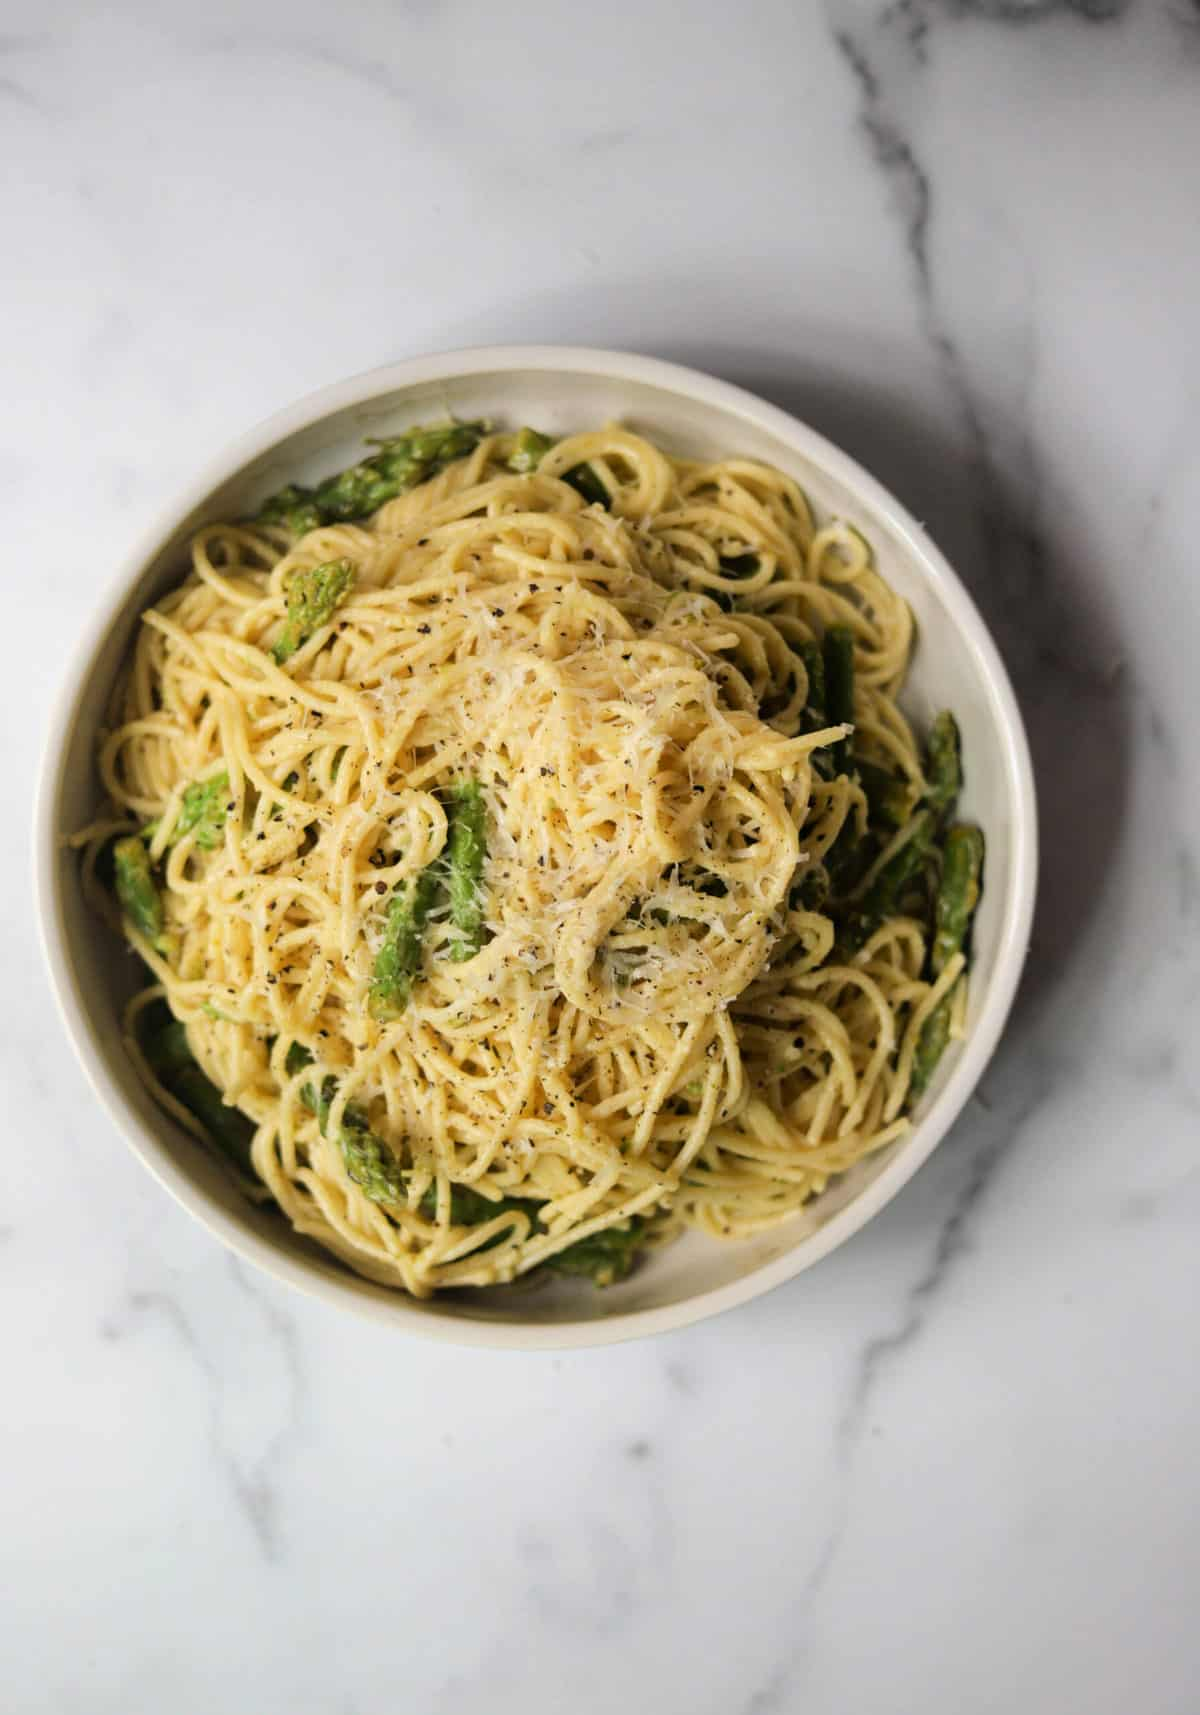 A white bowl filled with lemon asparagus pasta.